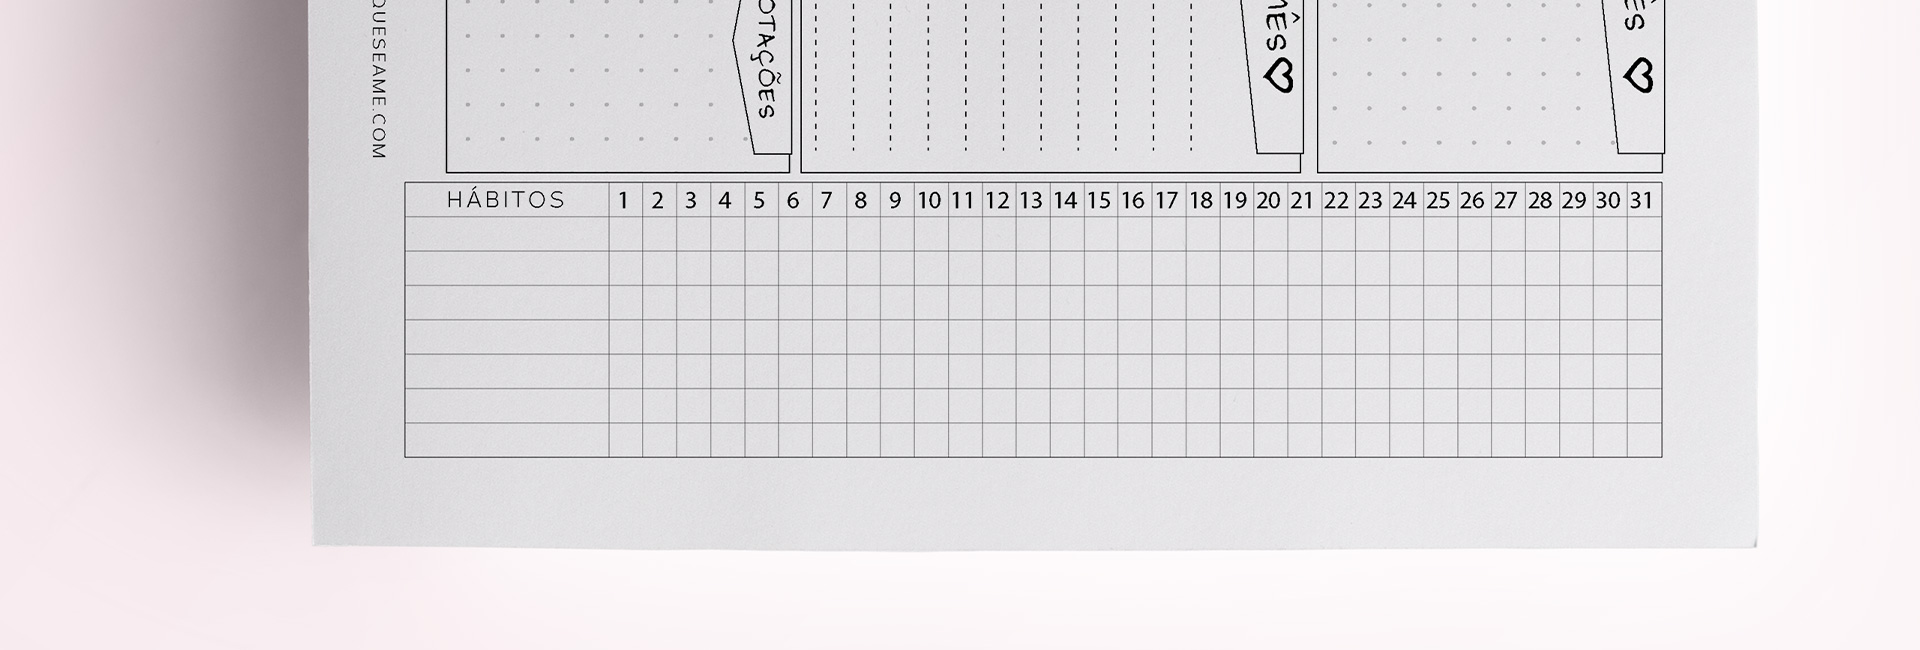 habit tracker, rastreador de habitos, habit tracker app, habit tracker printable, habits download, bullet journal tracker, habit tracker ideas, habit list, habit tracker planner, habit tracker online, habit tracker bujo, best habit tracker, productive habit tracker